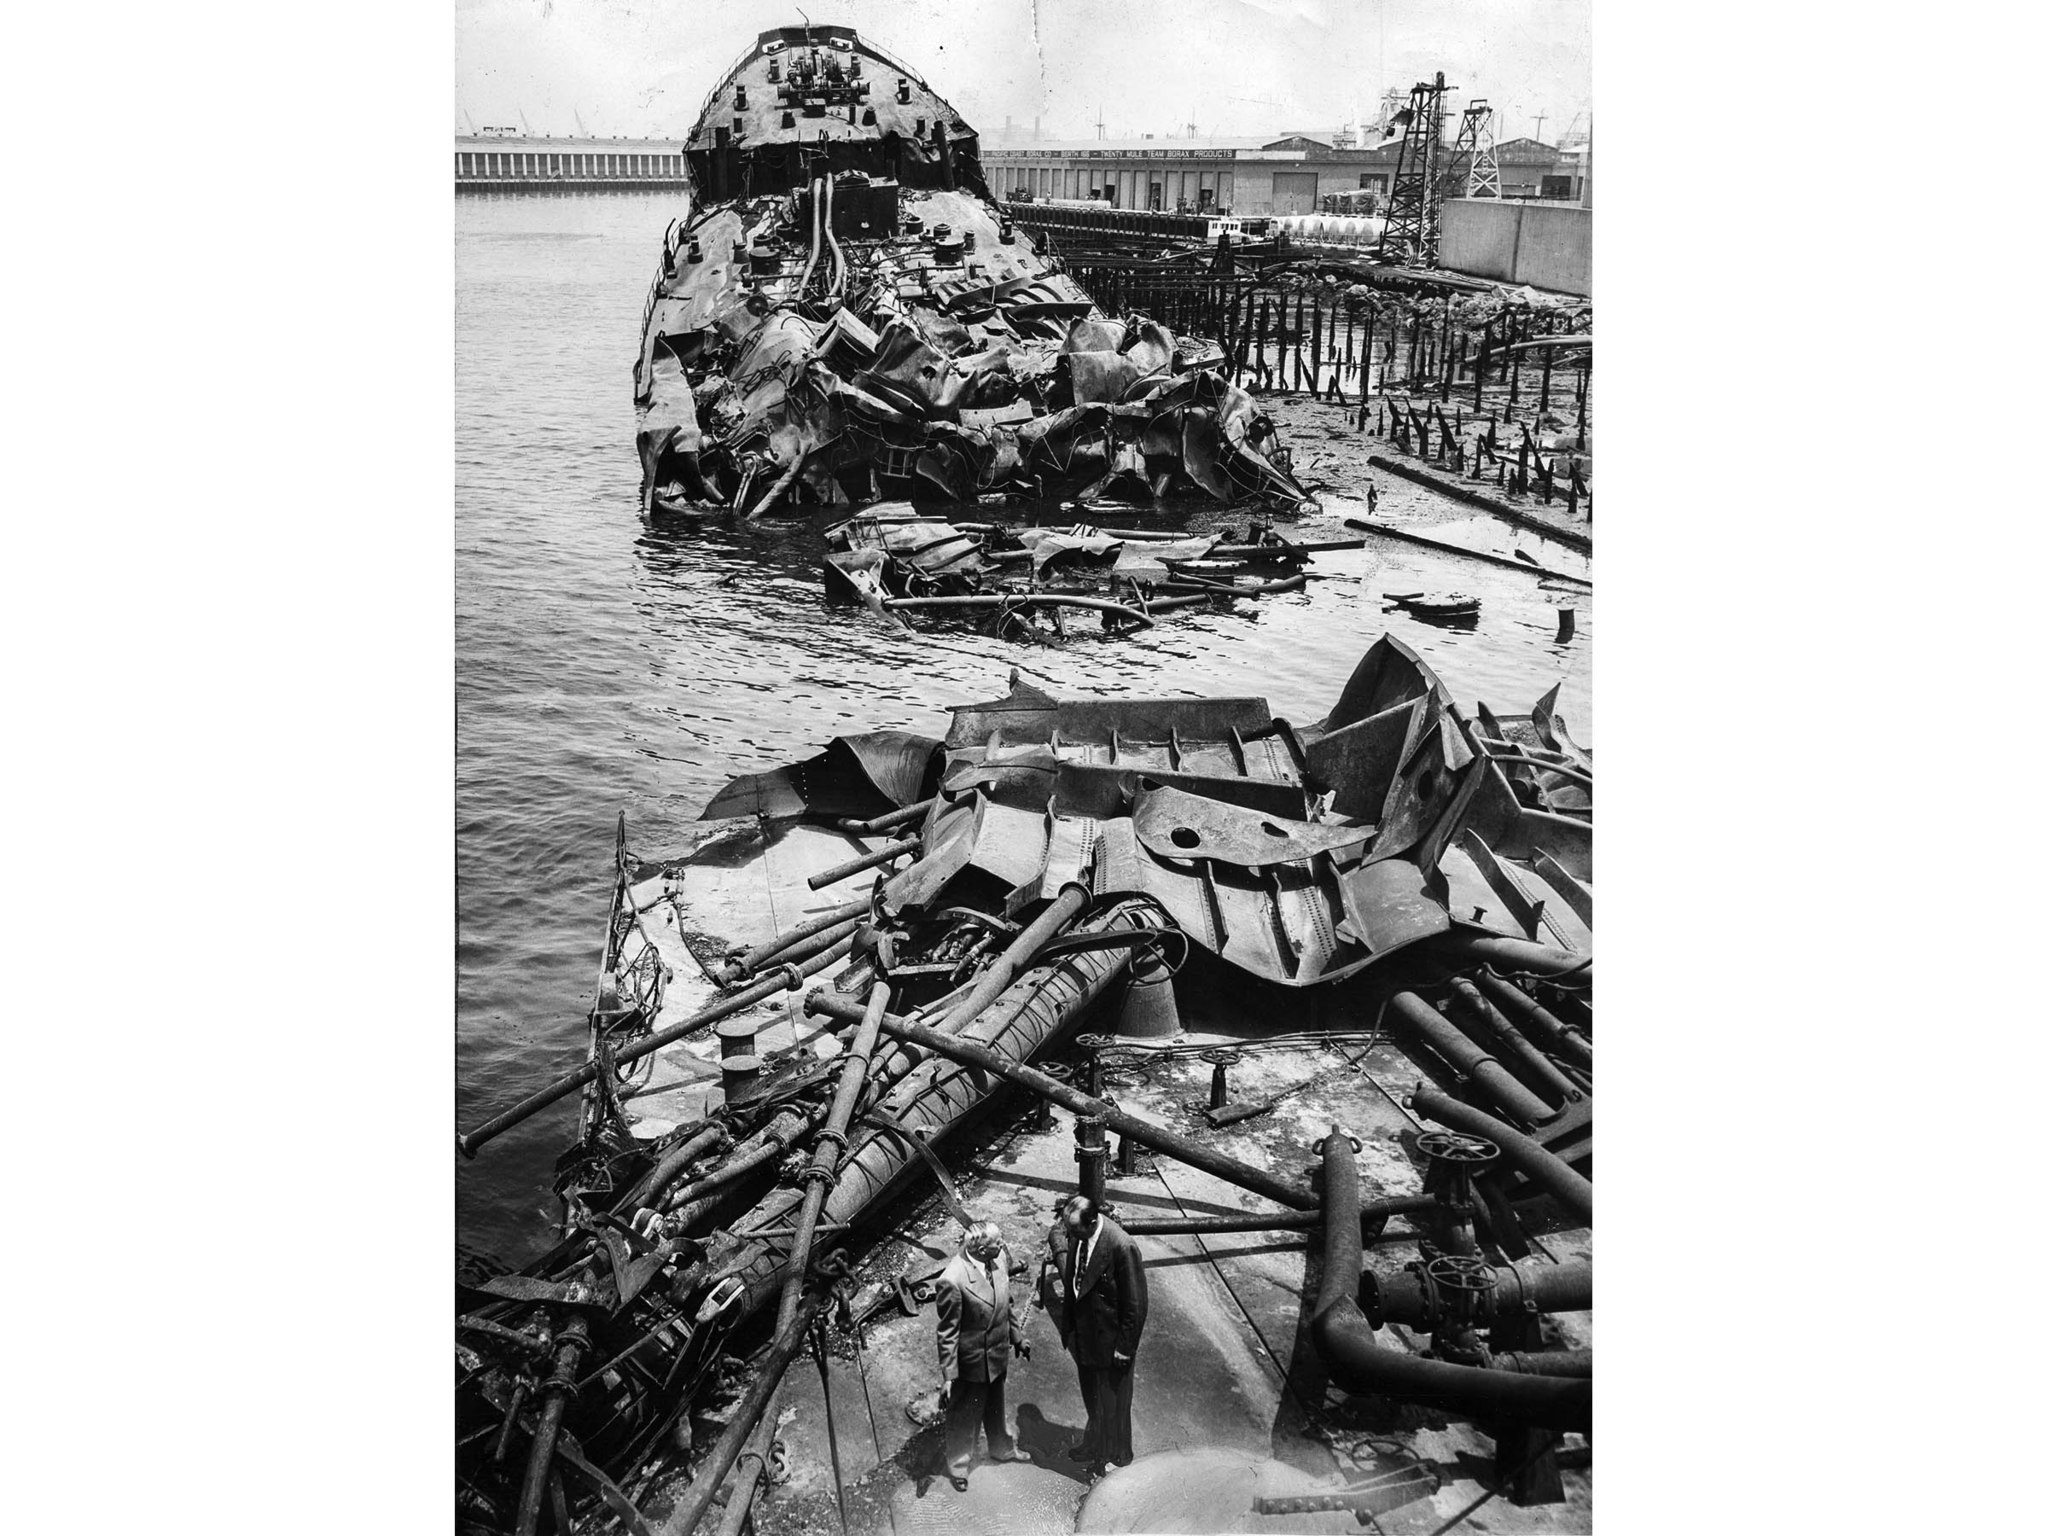 June 23, 1947: View from stern showing what's left of the tanker S.S. Markay in Los Angeles Harbor